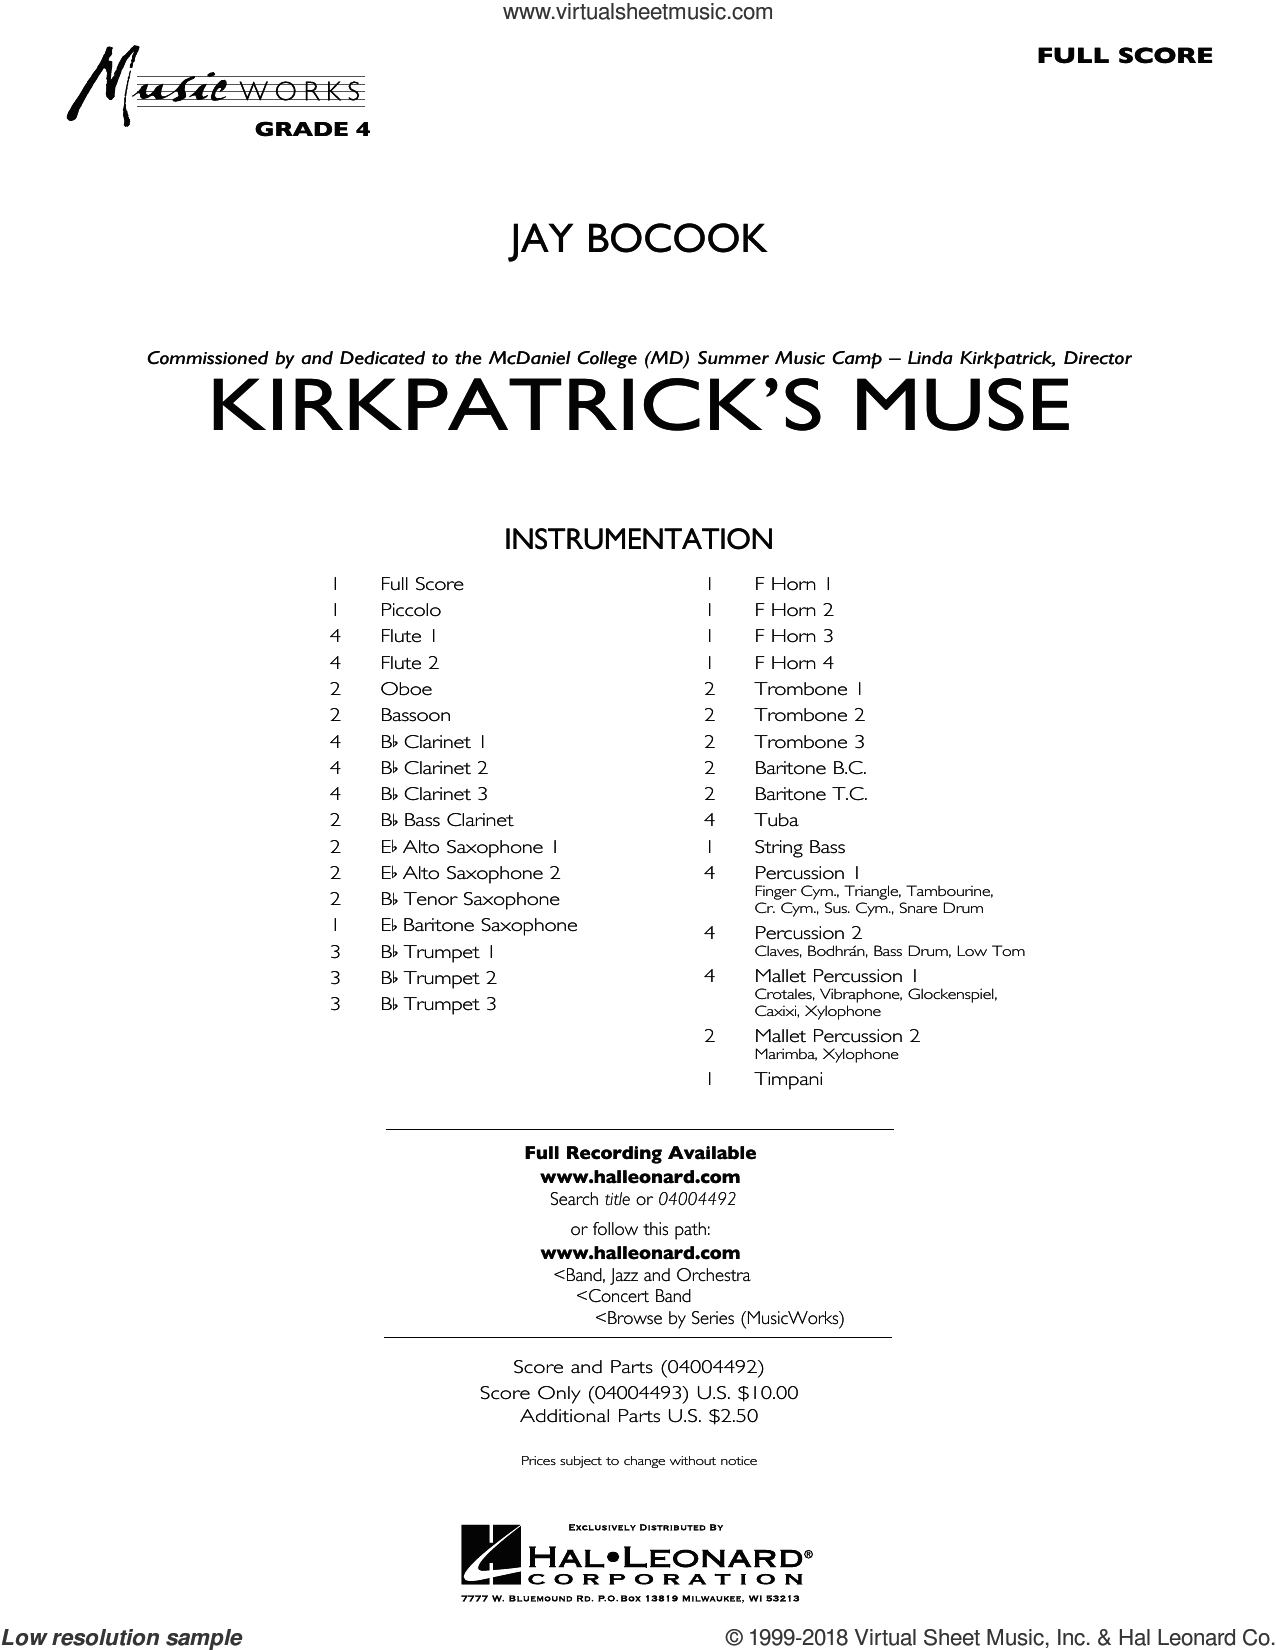 Kirkpatrick's Muse (COMPLETE) sheet music for concert band by Jay Bocook, intermediate